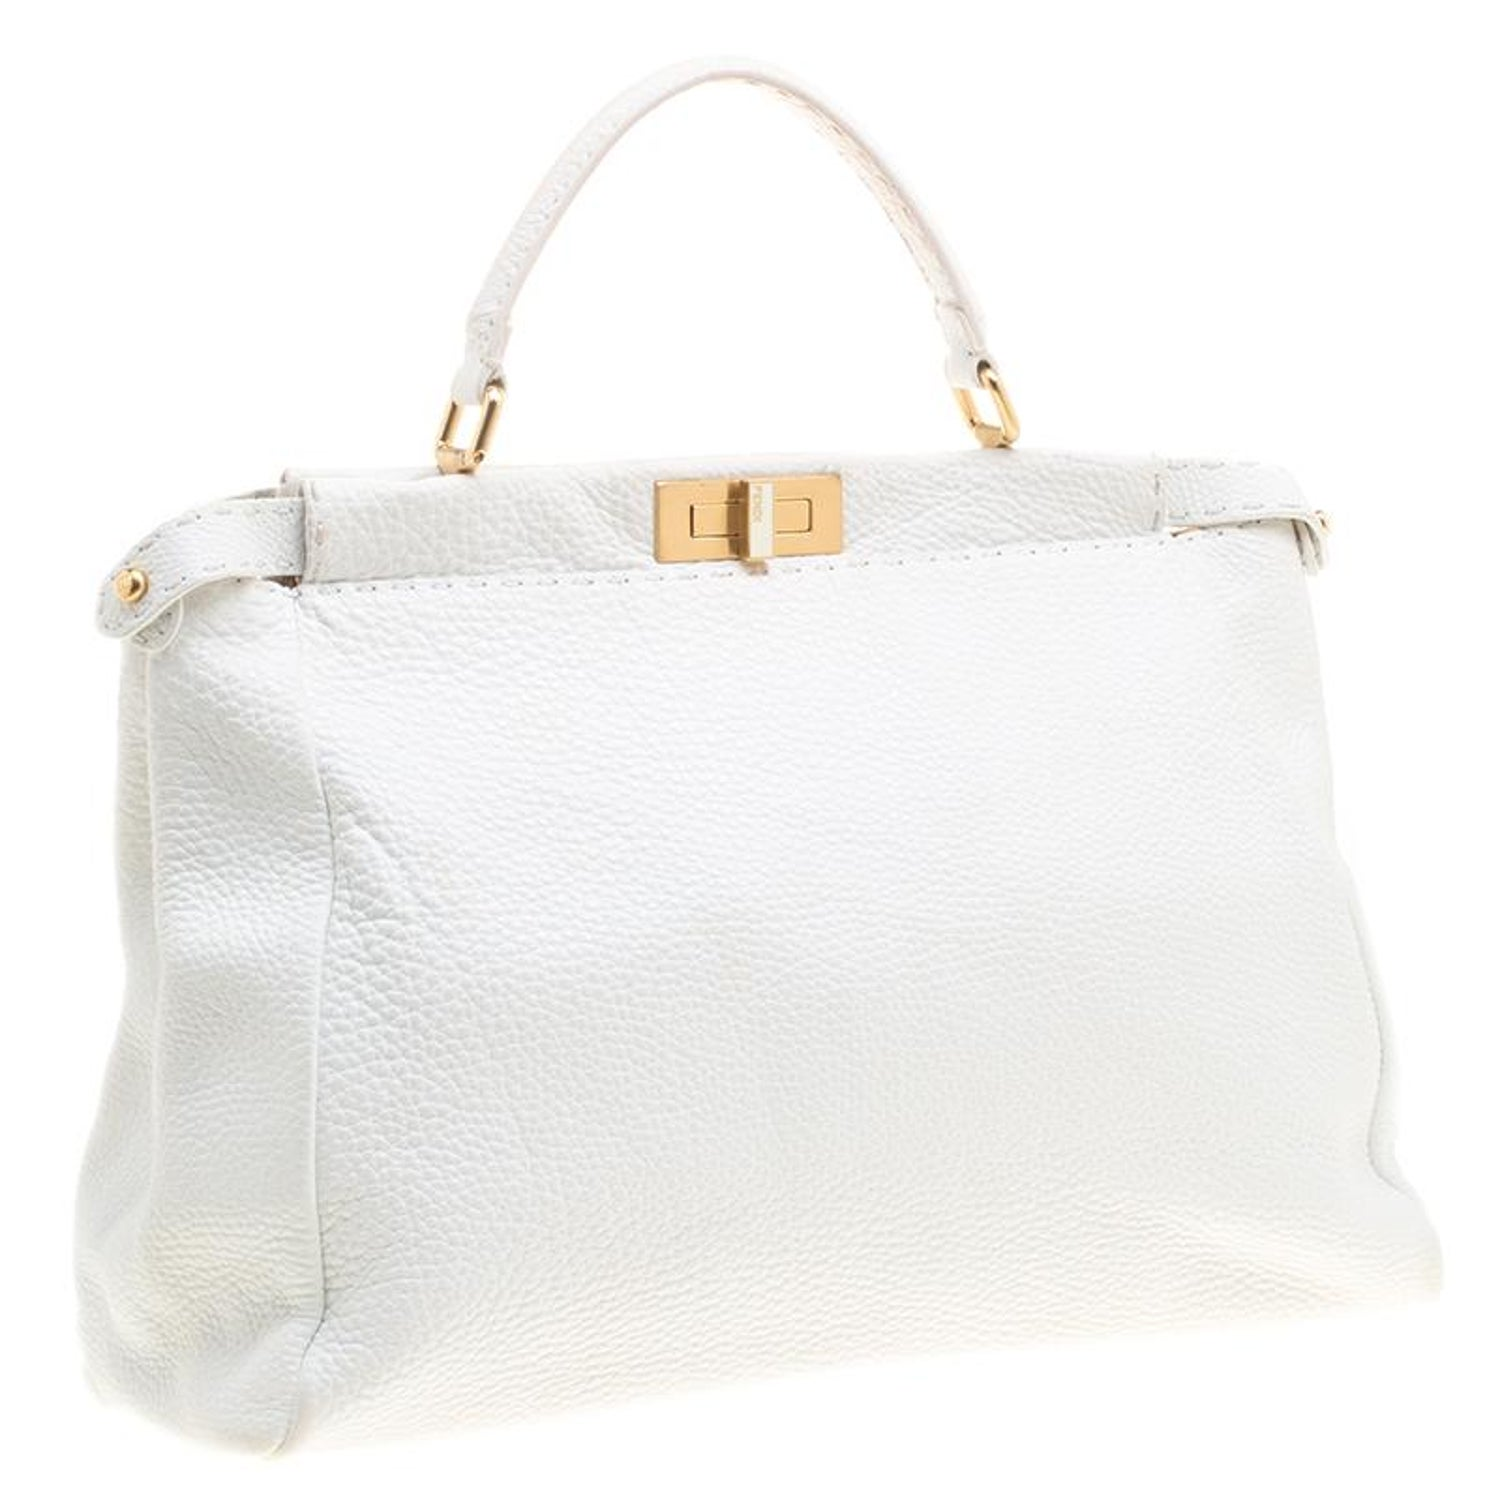 d91083356d Fendi White Leather Large Peekaboo Top Handle Bag For Sale at 1stdibs